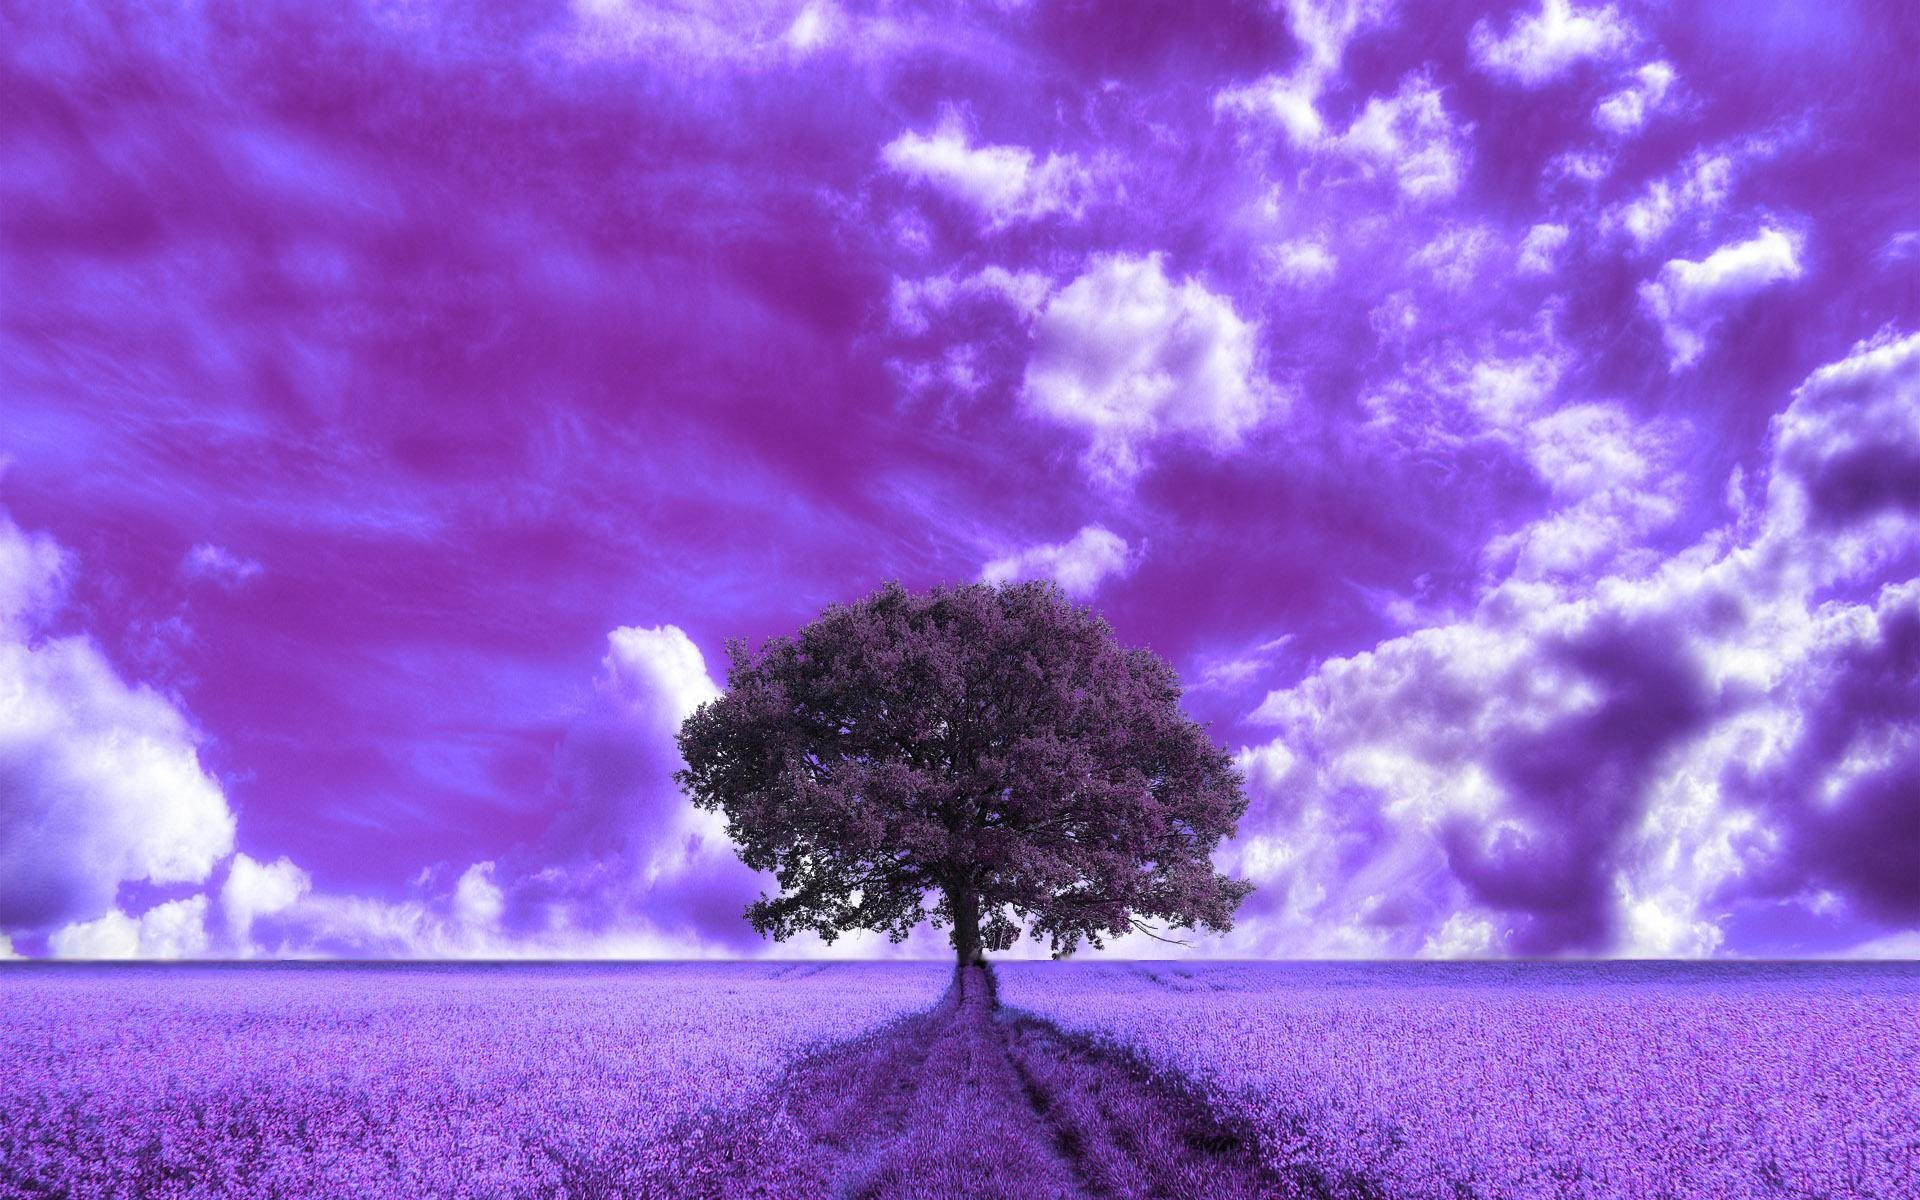 purple clouds and field hd wallpaper  background image